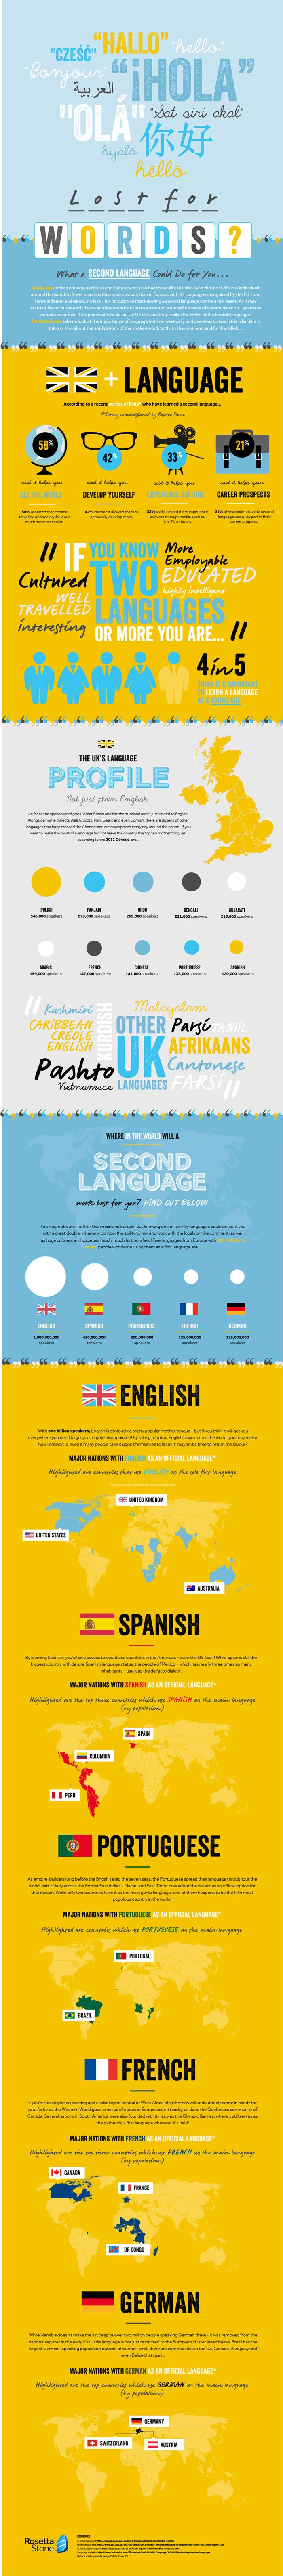 educational infographic  infographic  second language benefits  description infographic  second language